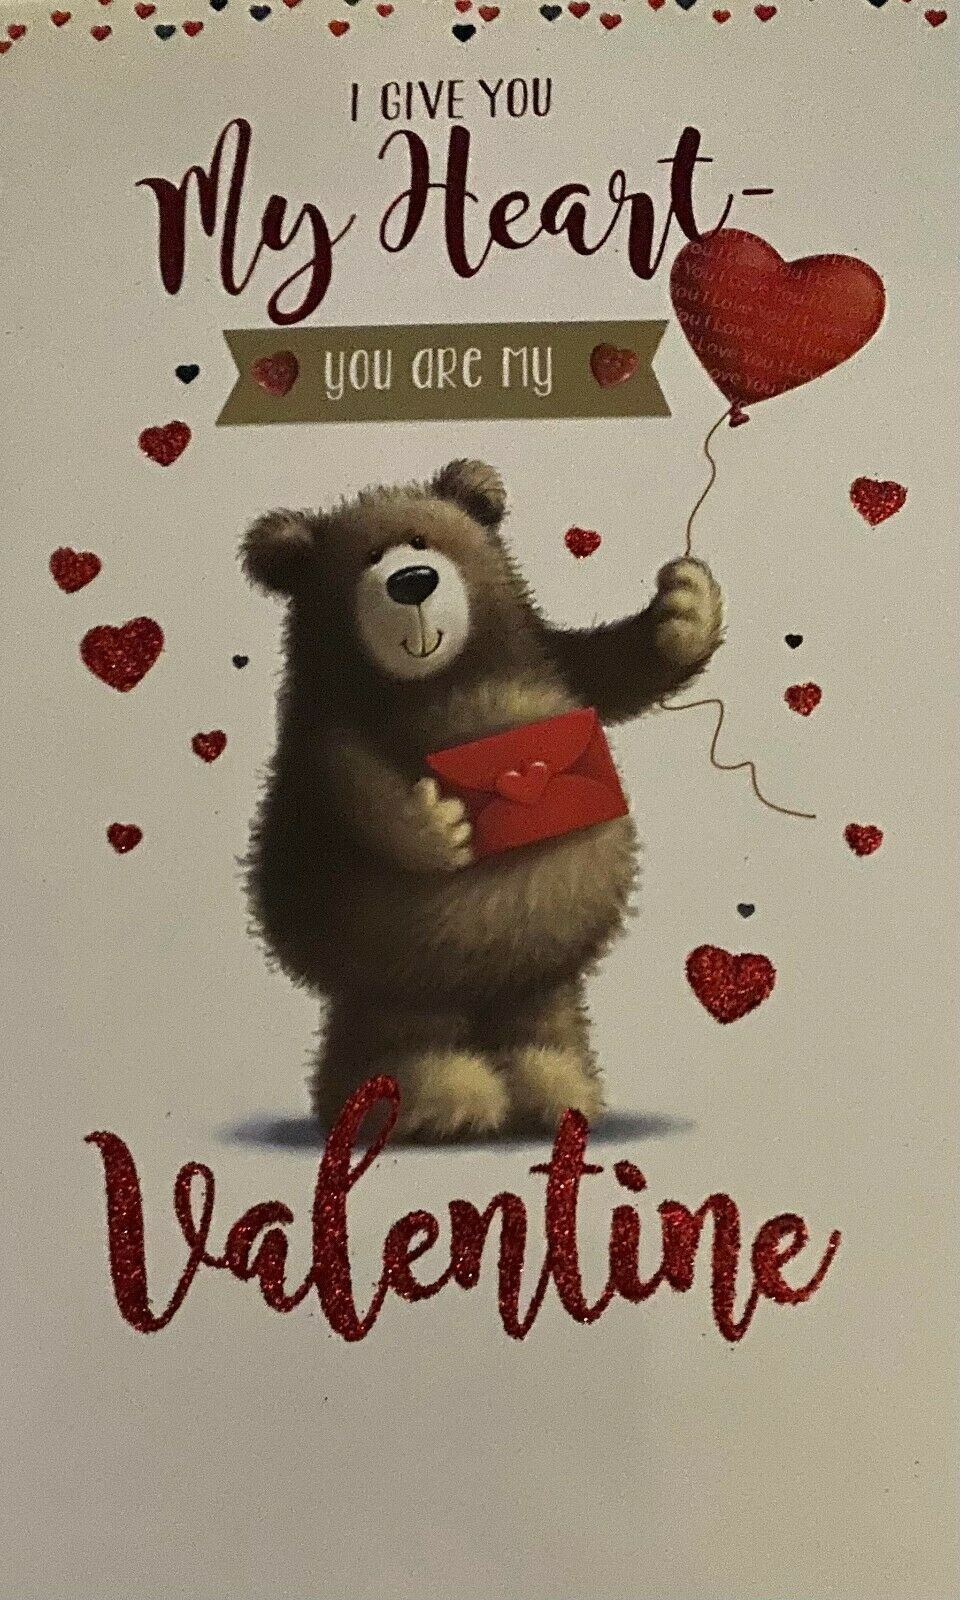 I Give You My Heart You Are My Valentine - Valentine's Day Card